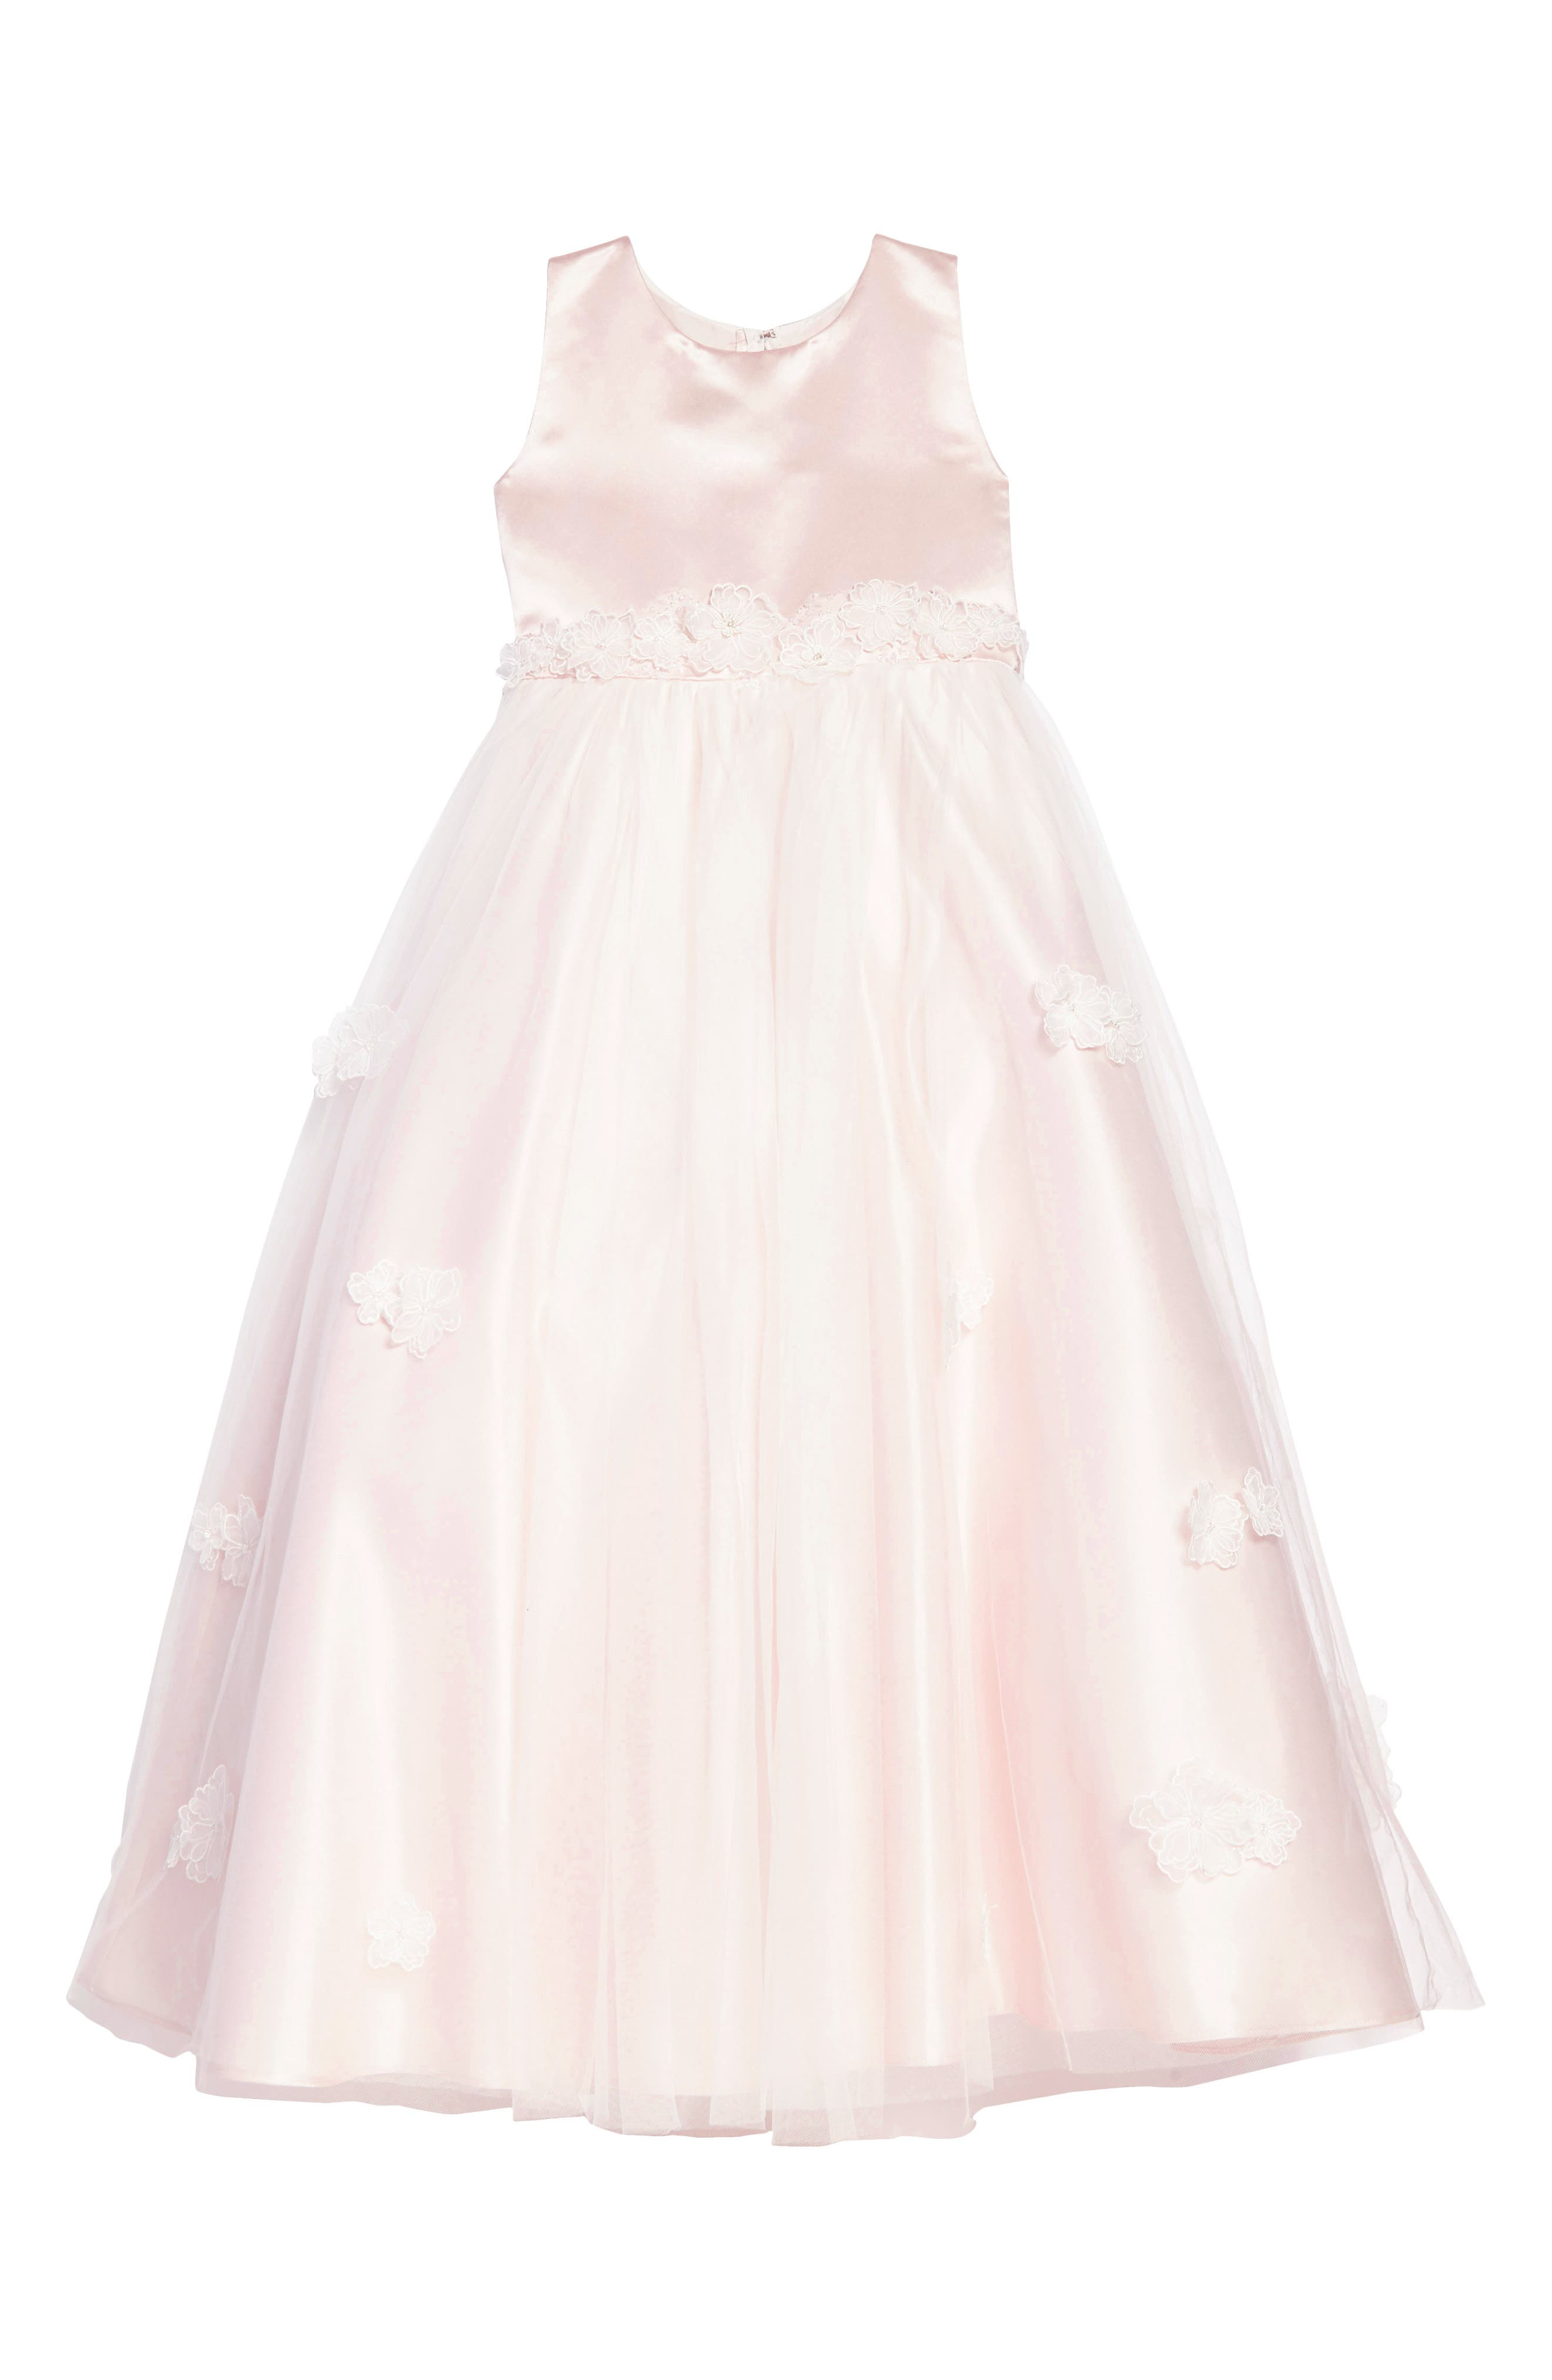 Satin & Tulle Dress,                         Main,                         color, PETAL/ IVORY